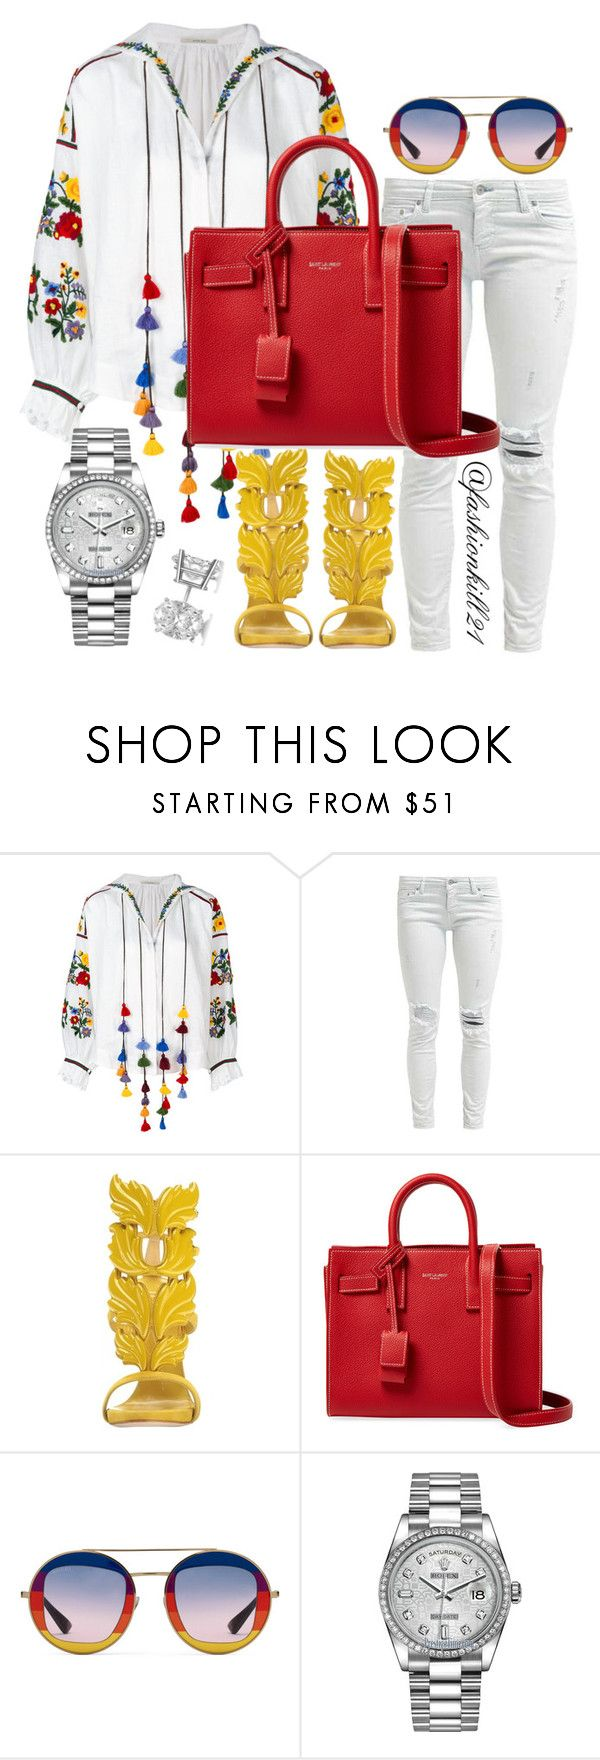 """Untitled #1426"" by fashionkill21 ❤ liked on Polyvore featuring Vita Kin, Giuseppe Zanotti, Yves Saint Laurent, Gucci, Rolex and Allurez"